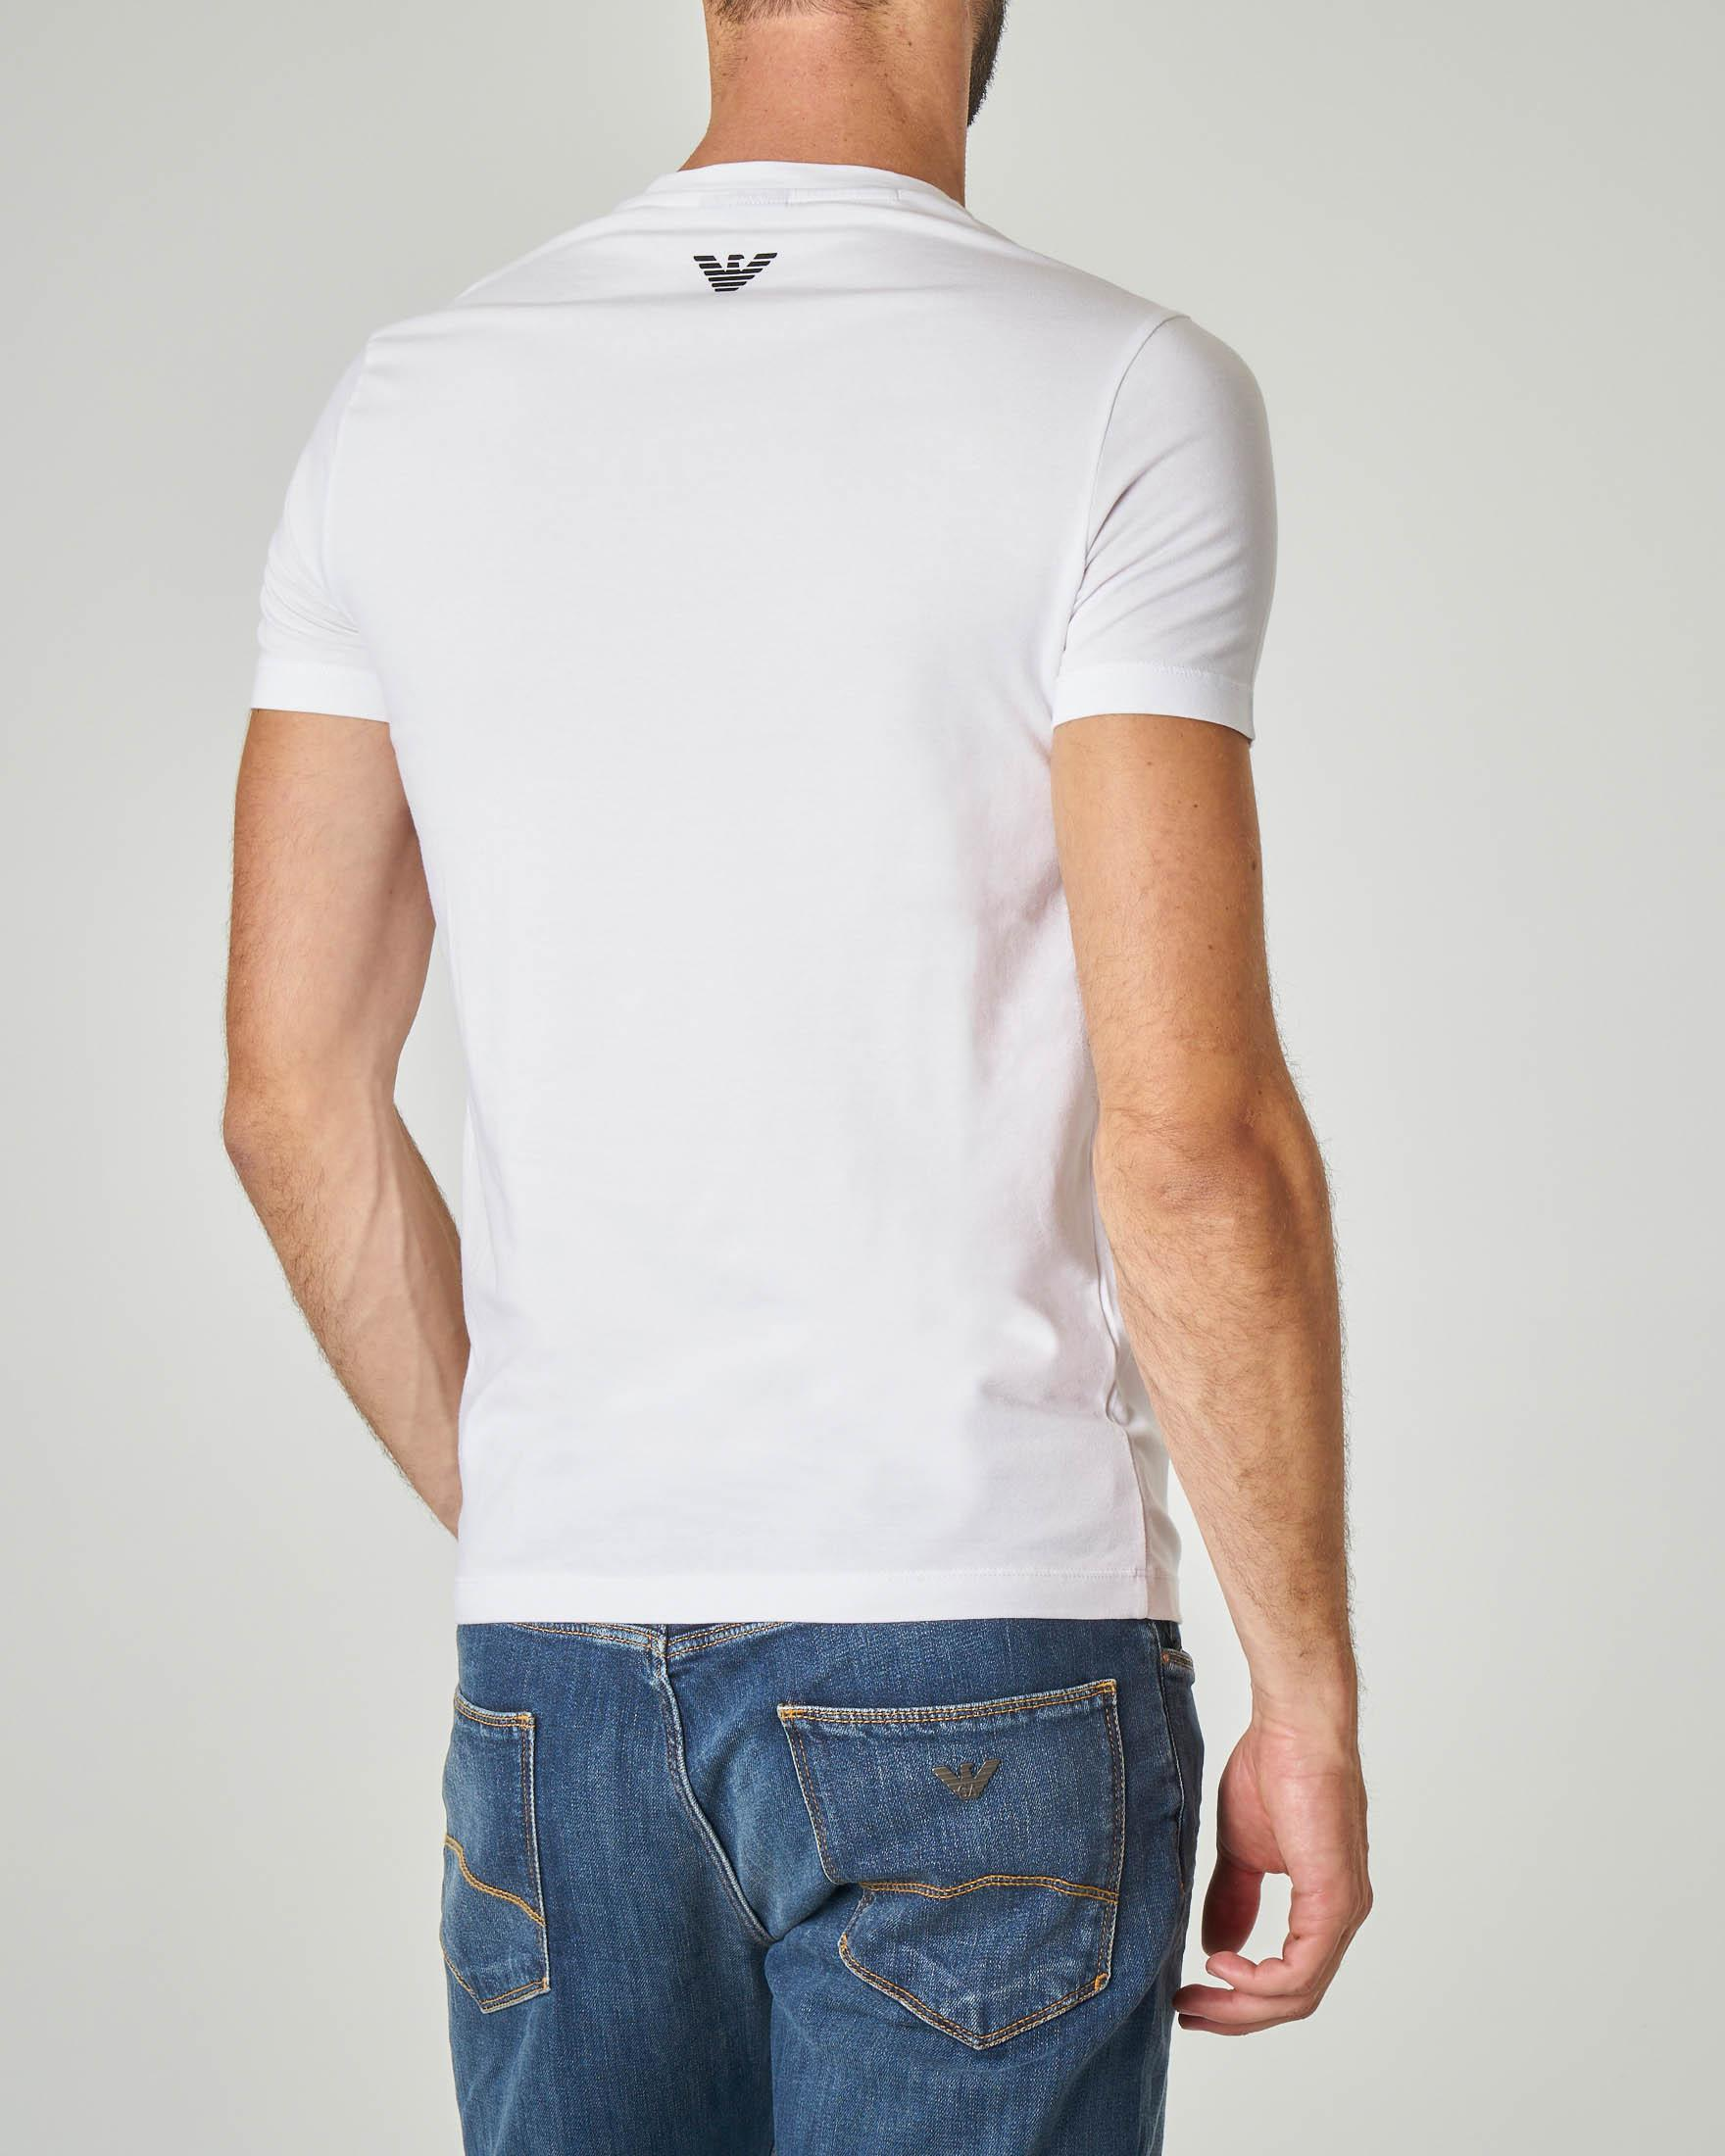 T-shirt bianca in cotone stretch con logo stampato